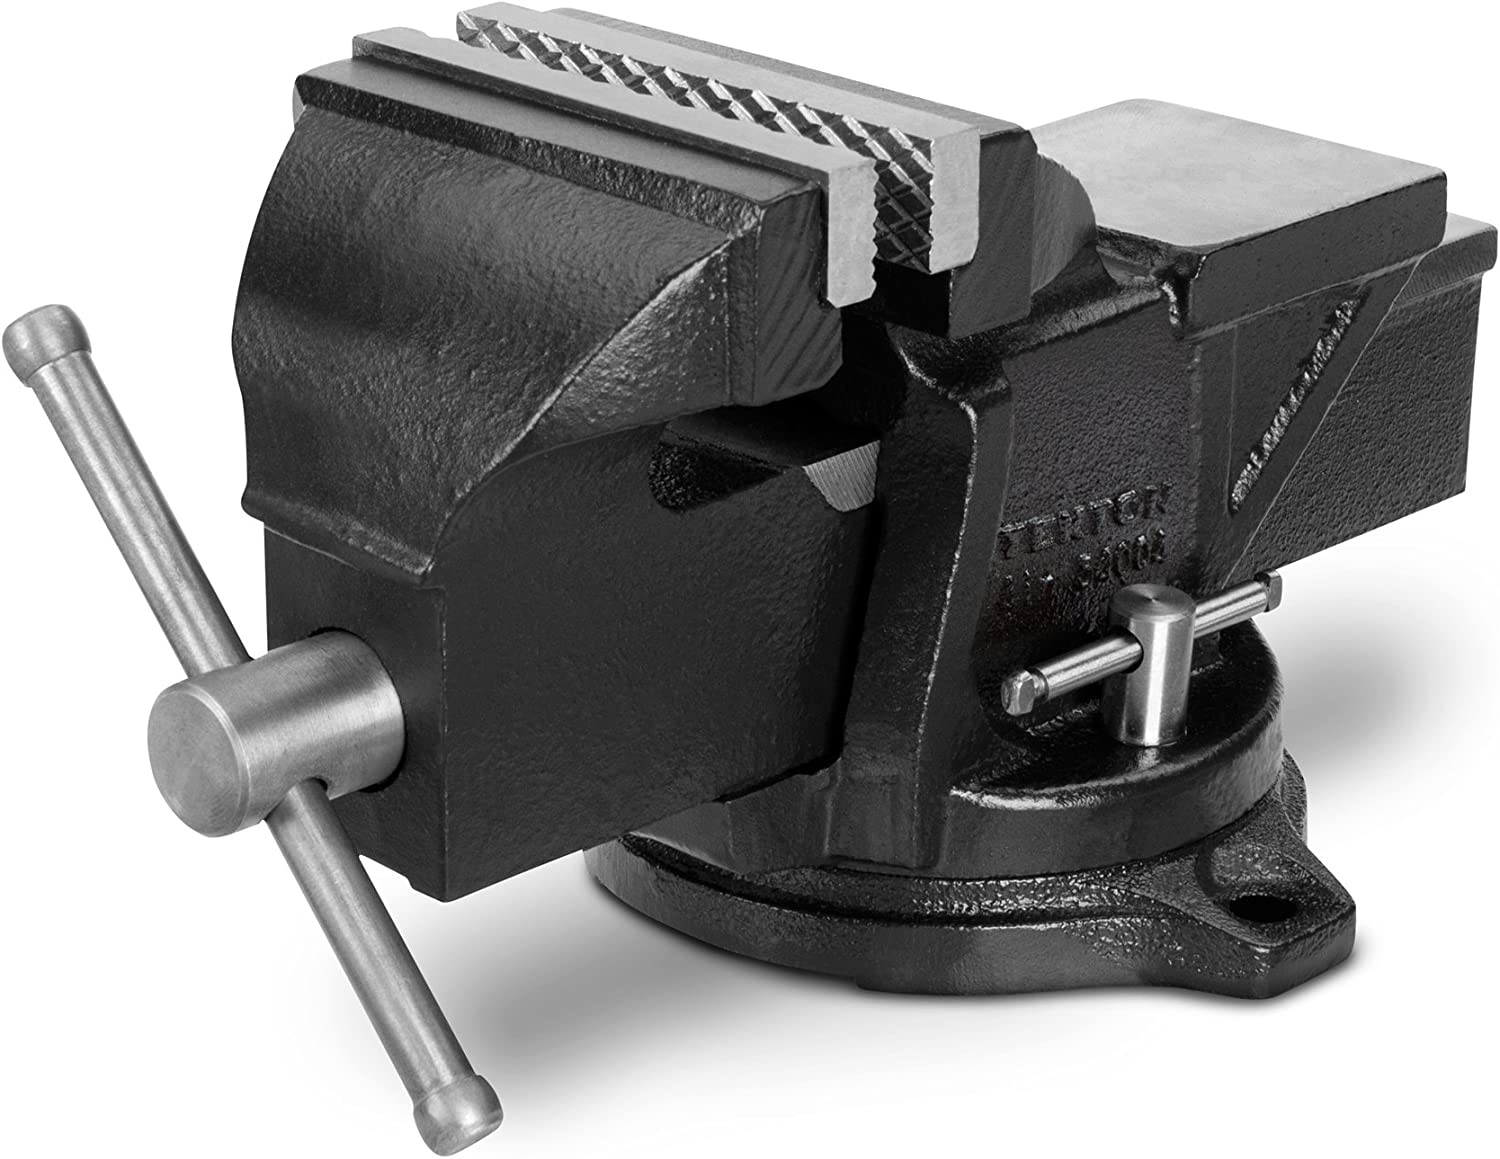 best bench vise: TEKTON 54004 can be your budget pick